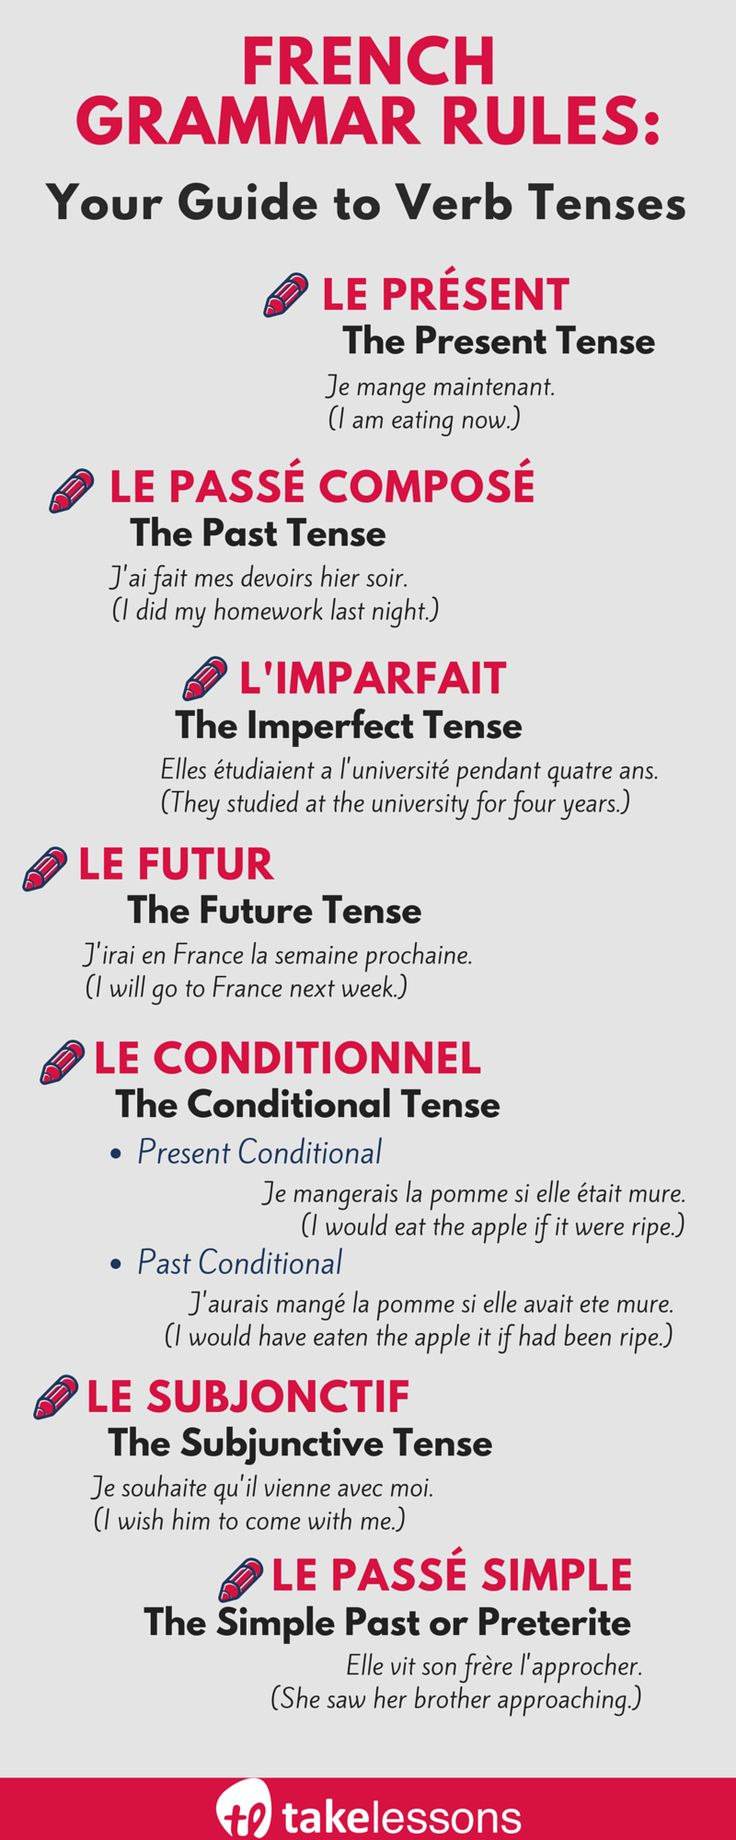 French Grammar Rules: Your Guide to Verb Tenses http://takelessons.com/blog/french-grammar-verb-tenses-z04?utm_source=social&utm_medium=blog&utm_campaign=pinterest #French #francais